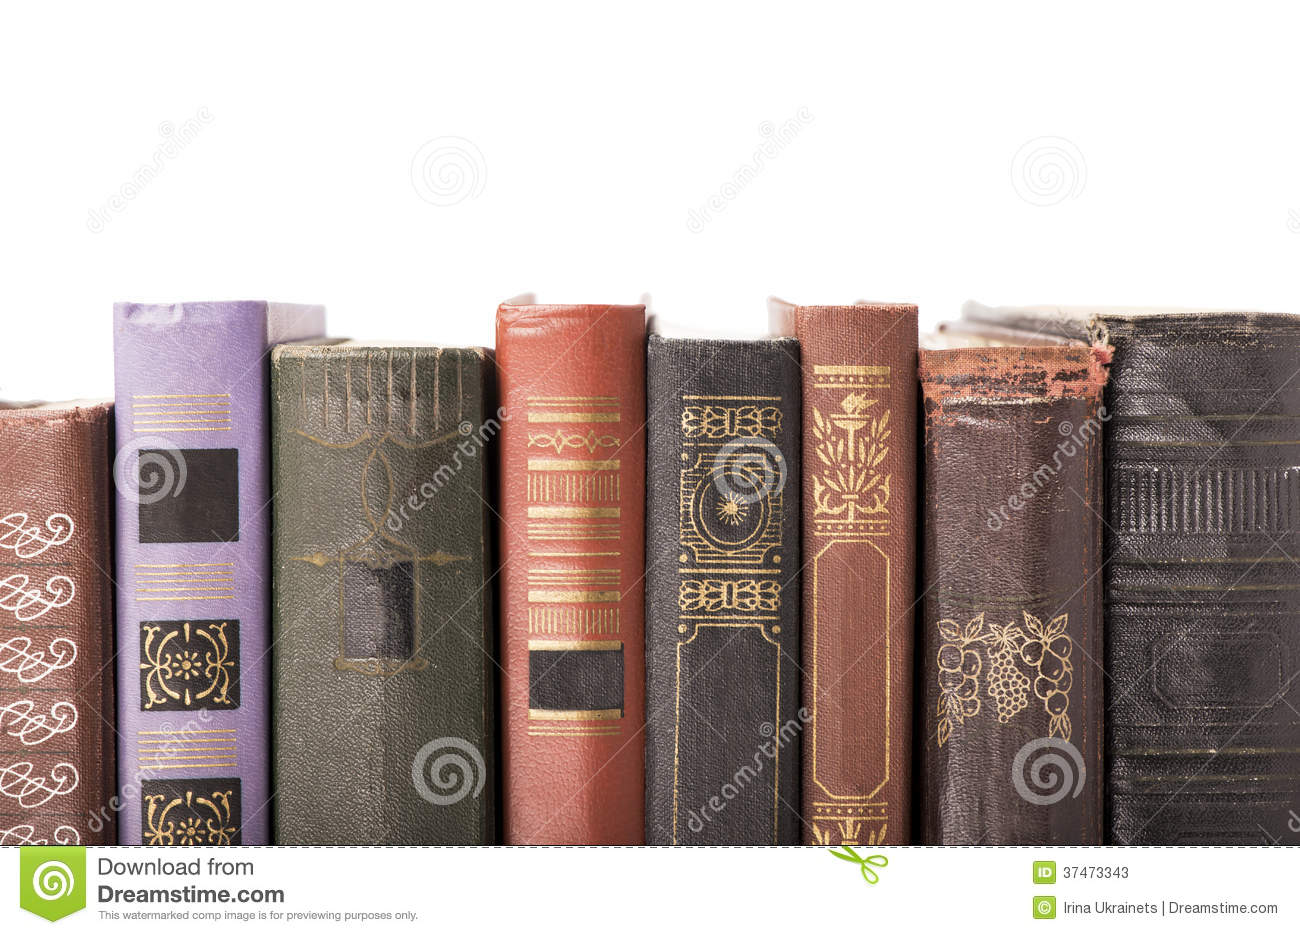 Vintage Hardcover Book : Old hardcover books stock photos image